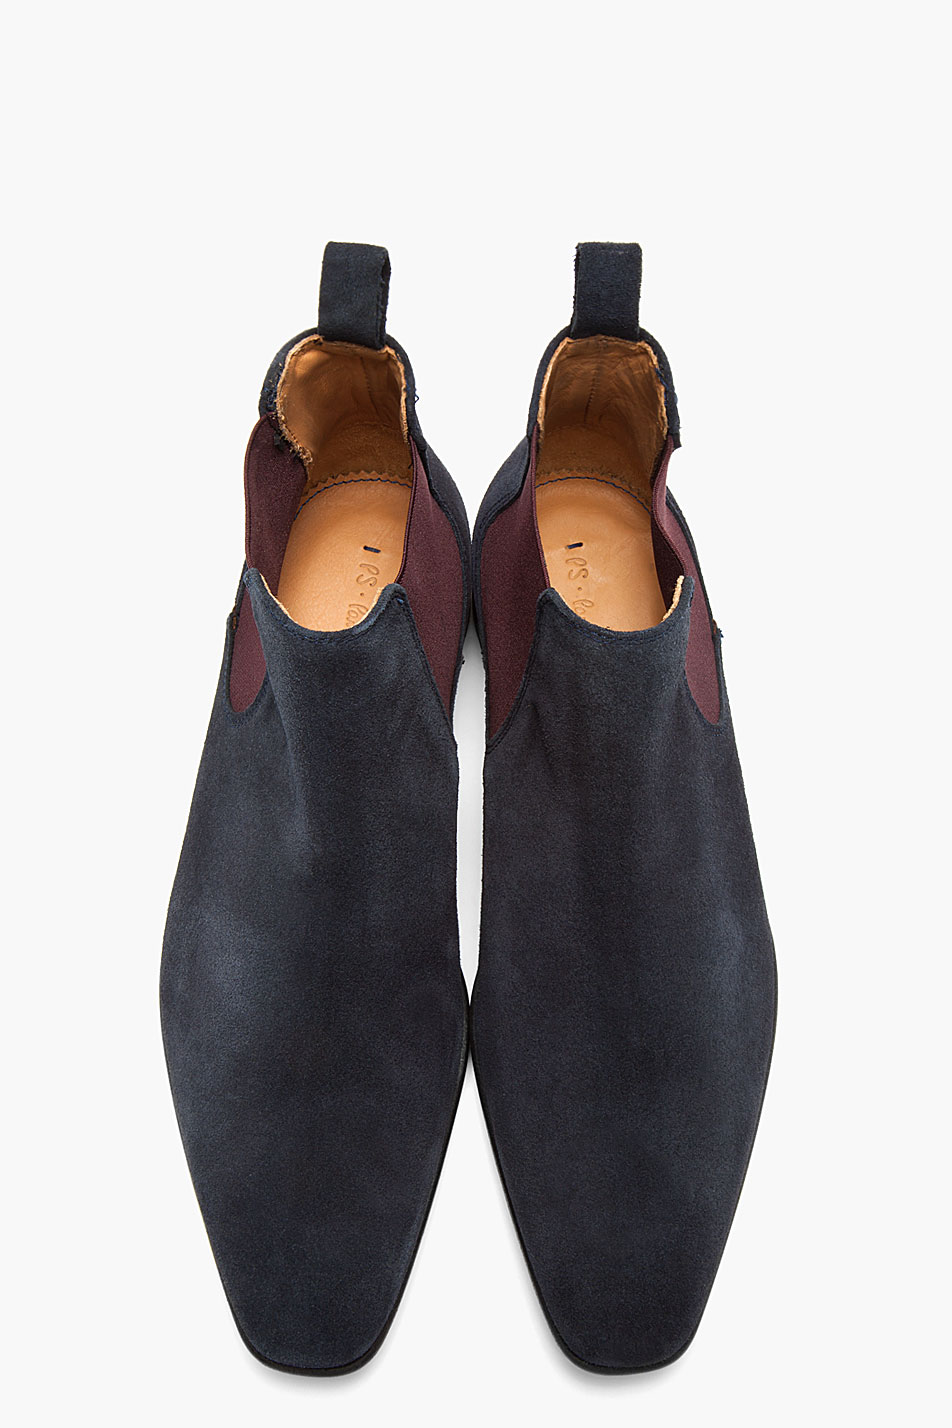 Ps by paul smith Navy and Purple Falconer Oceano Suede Boots for ...